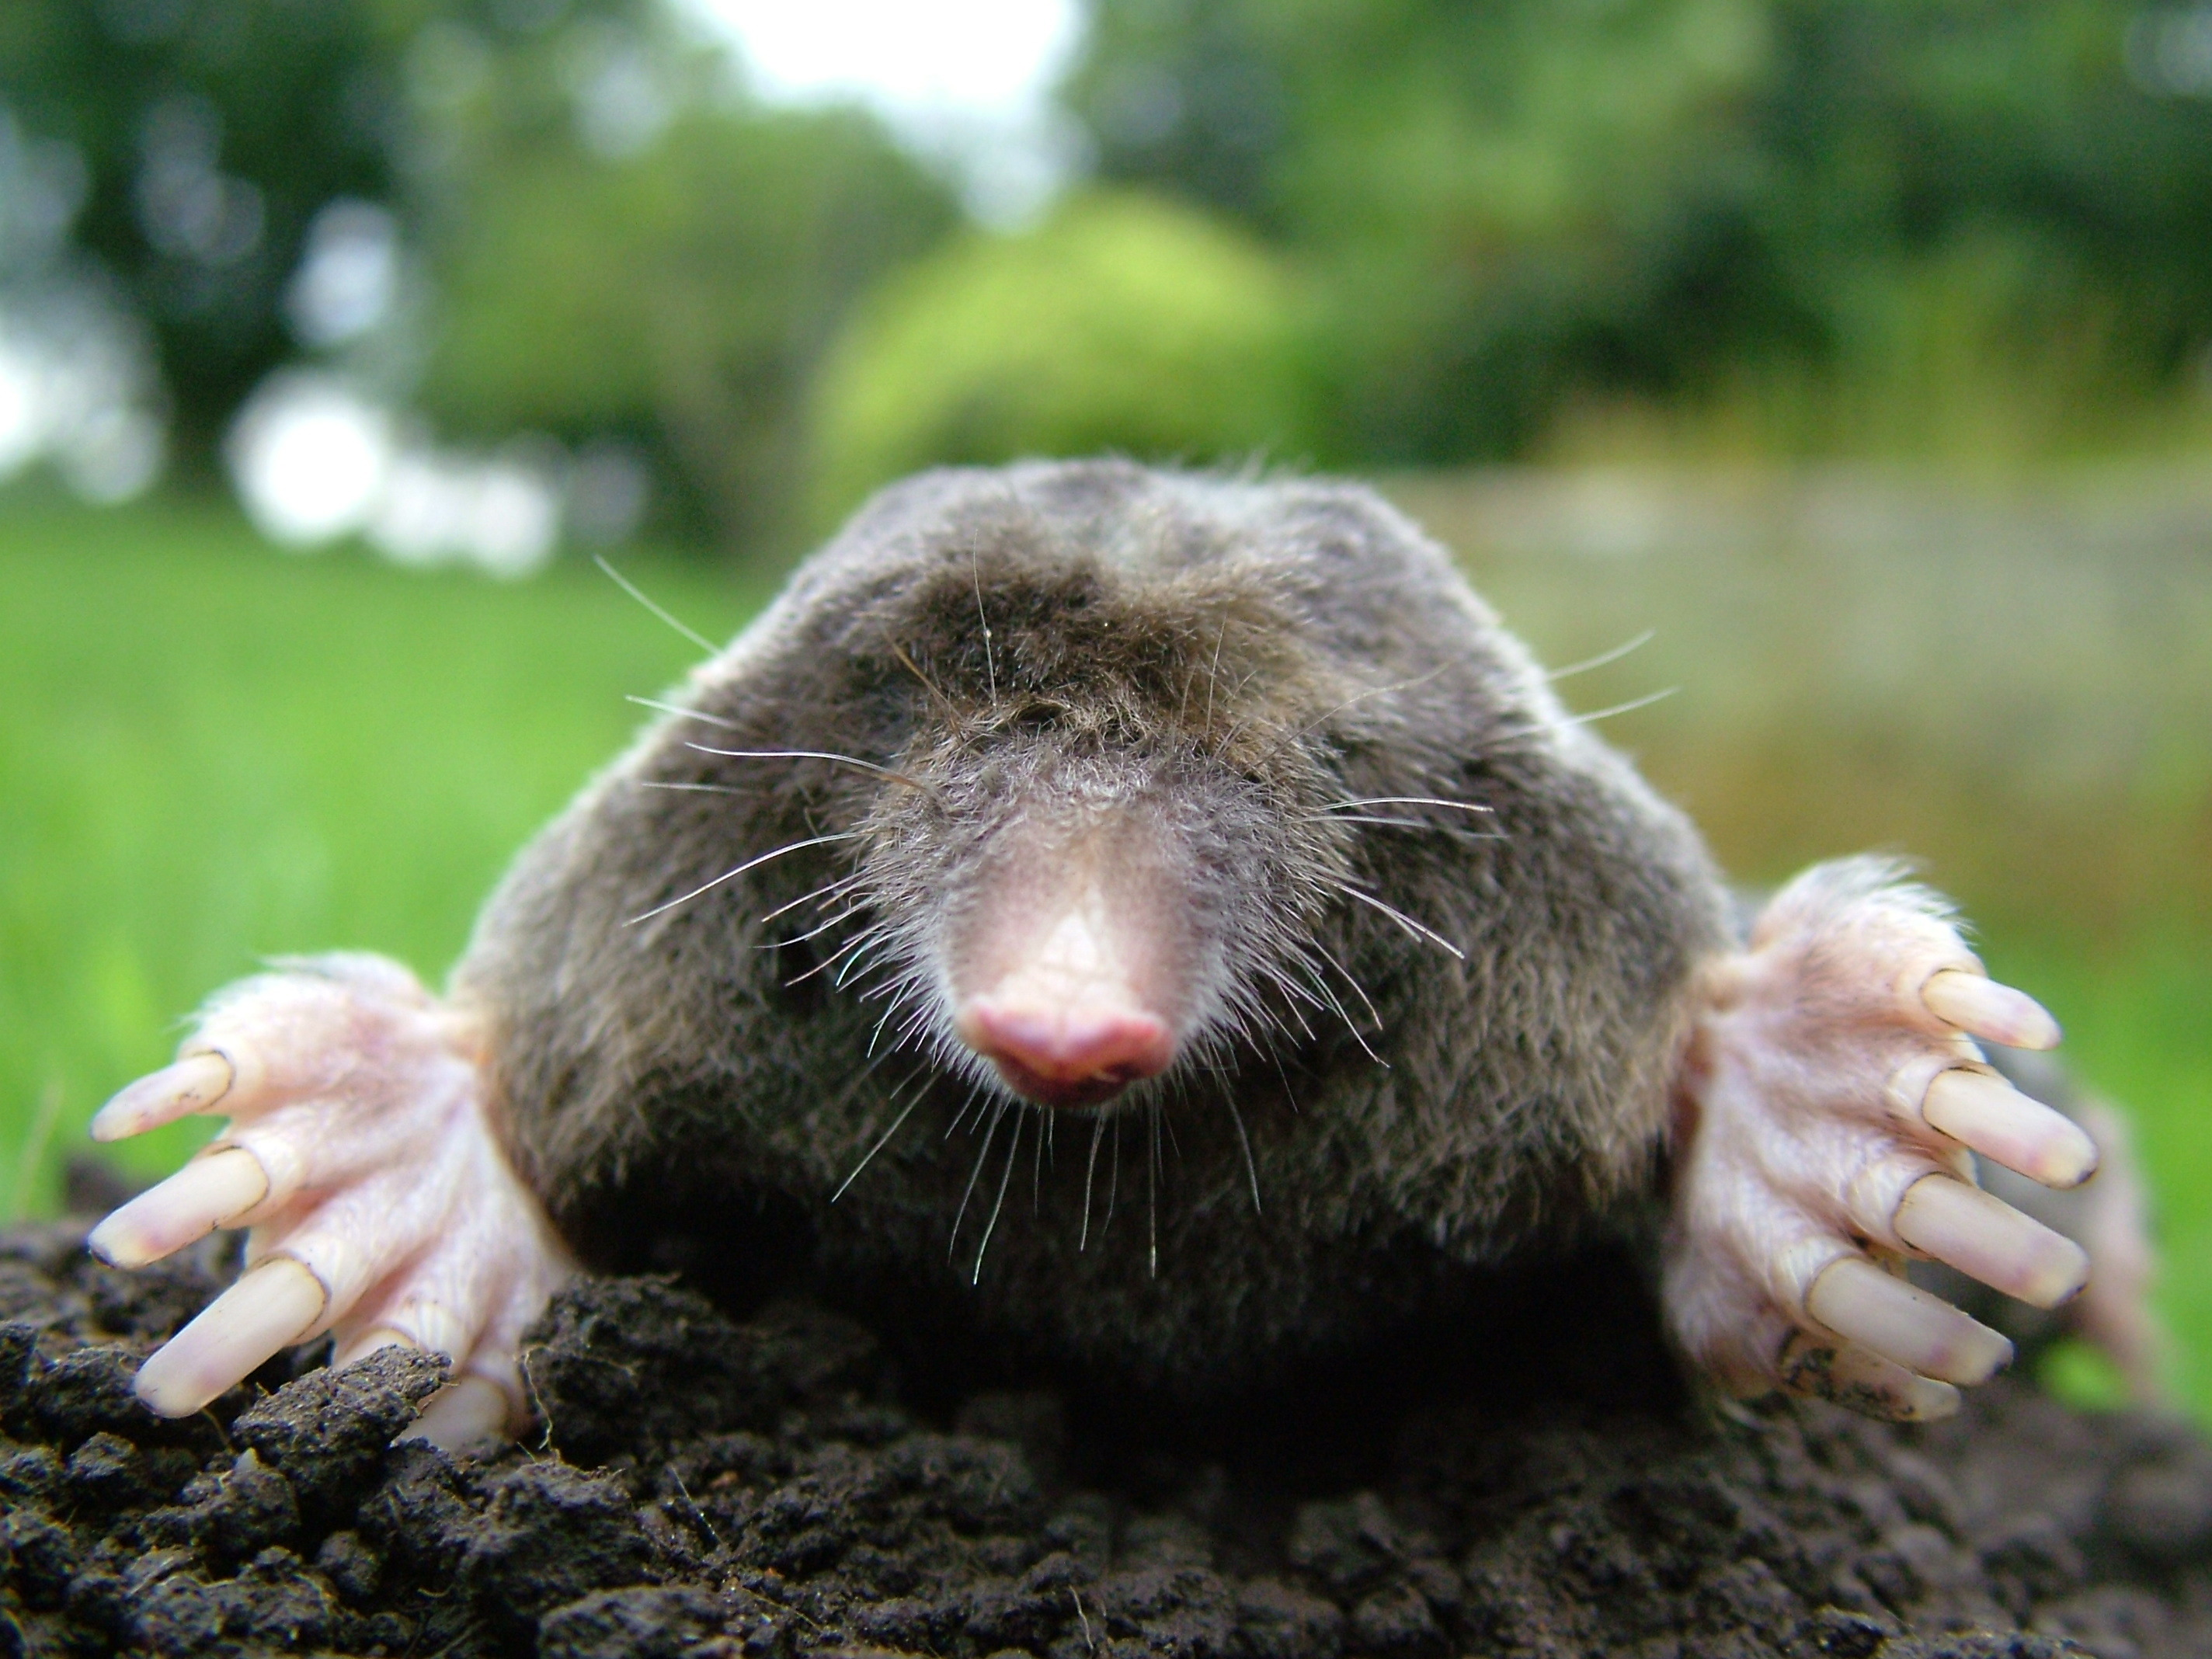 mole lolk creatures Animals HD Wallpaper